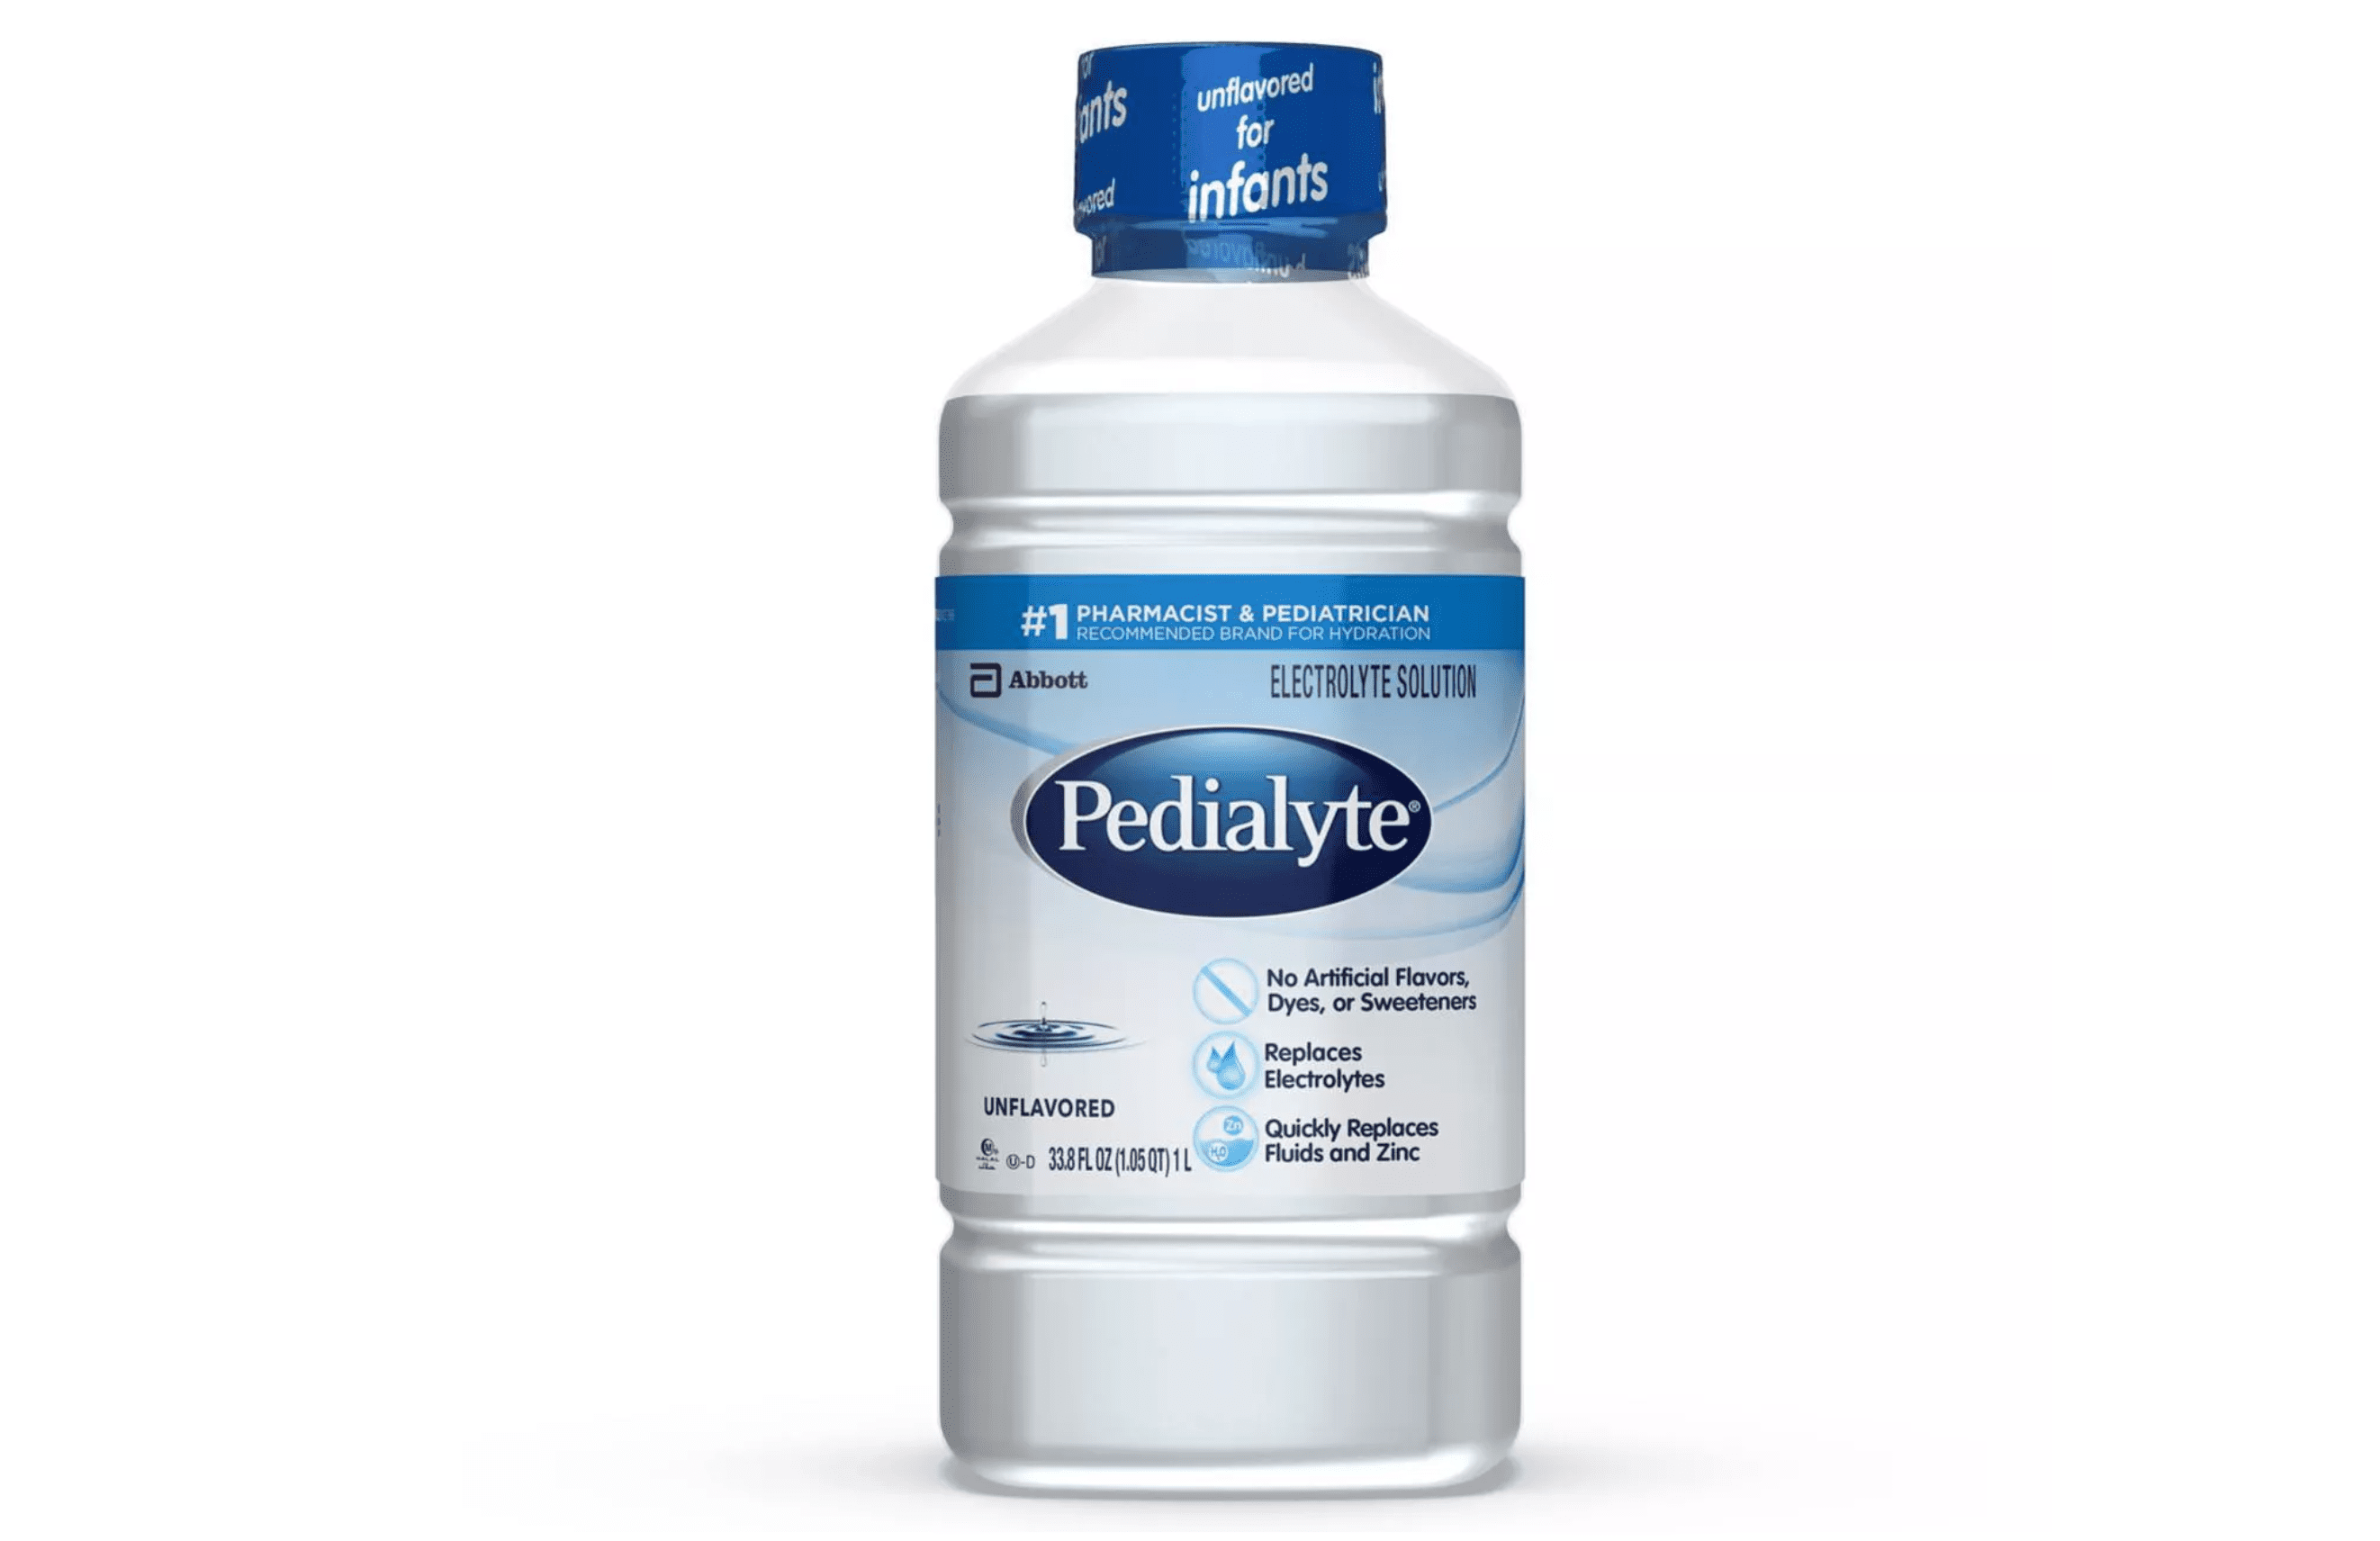 pedialyte-unflavored